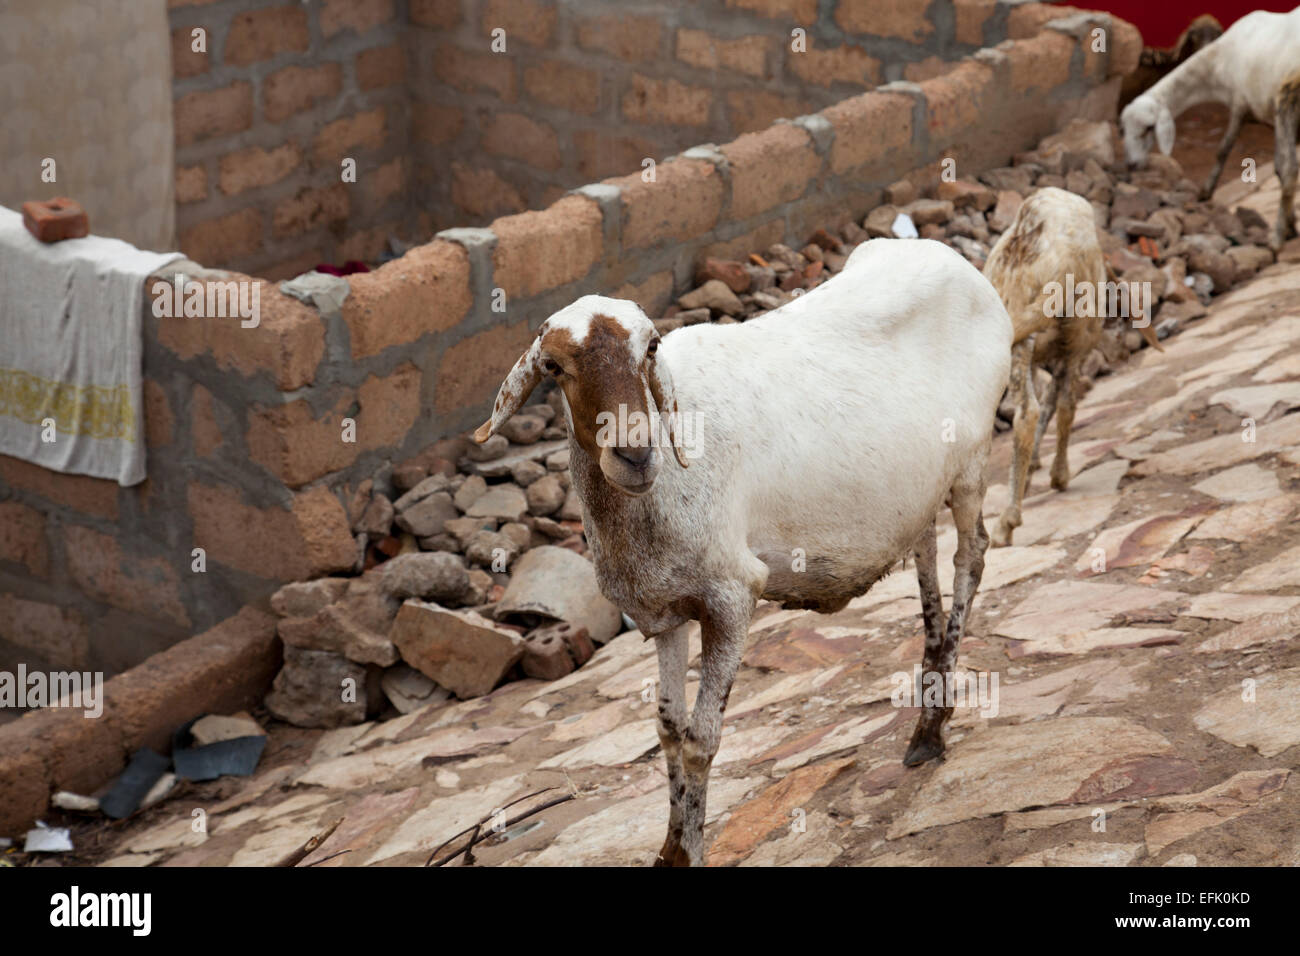 Family of goats wander the streets in a shanty town area of Accra, Ghana - Stock Image